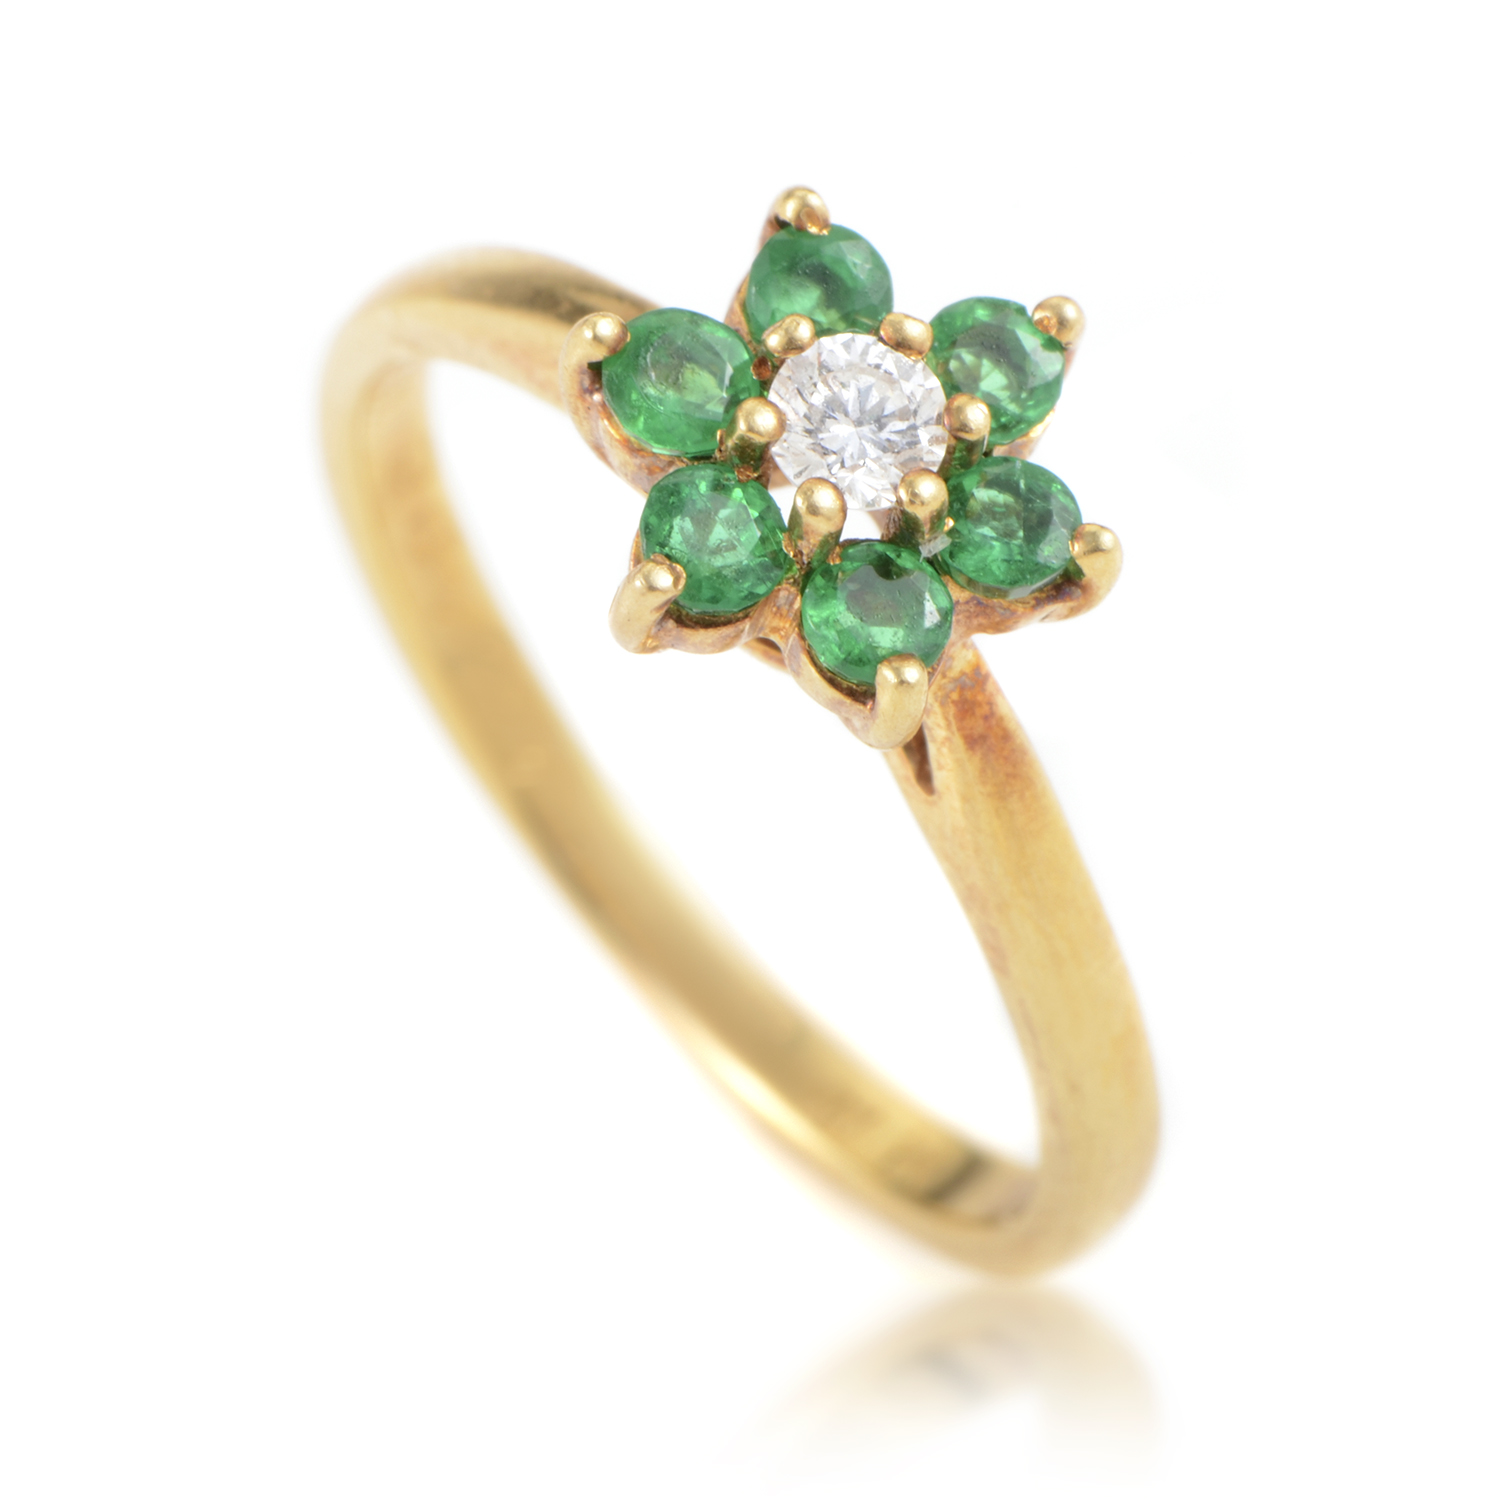 Tiffany & Co. Womens 18K Yellow Gold Diamond and Emerald Flower Ring